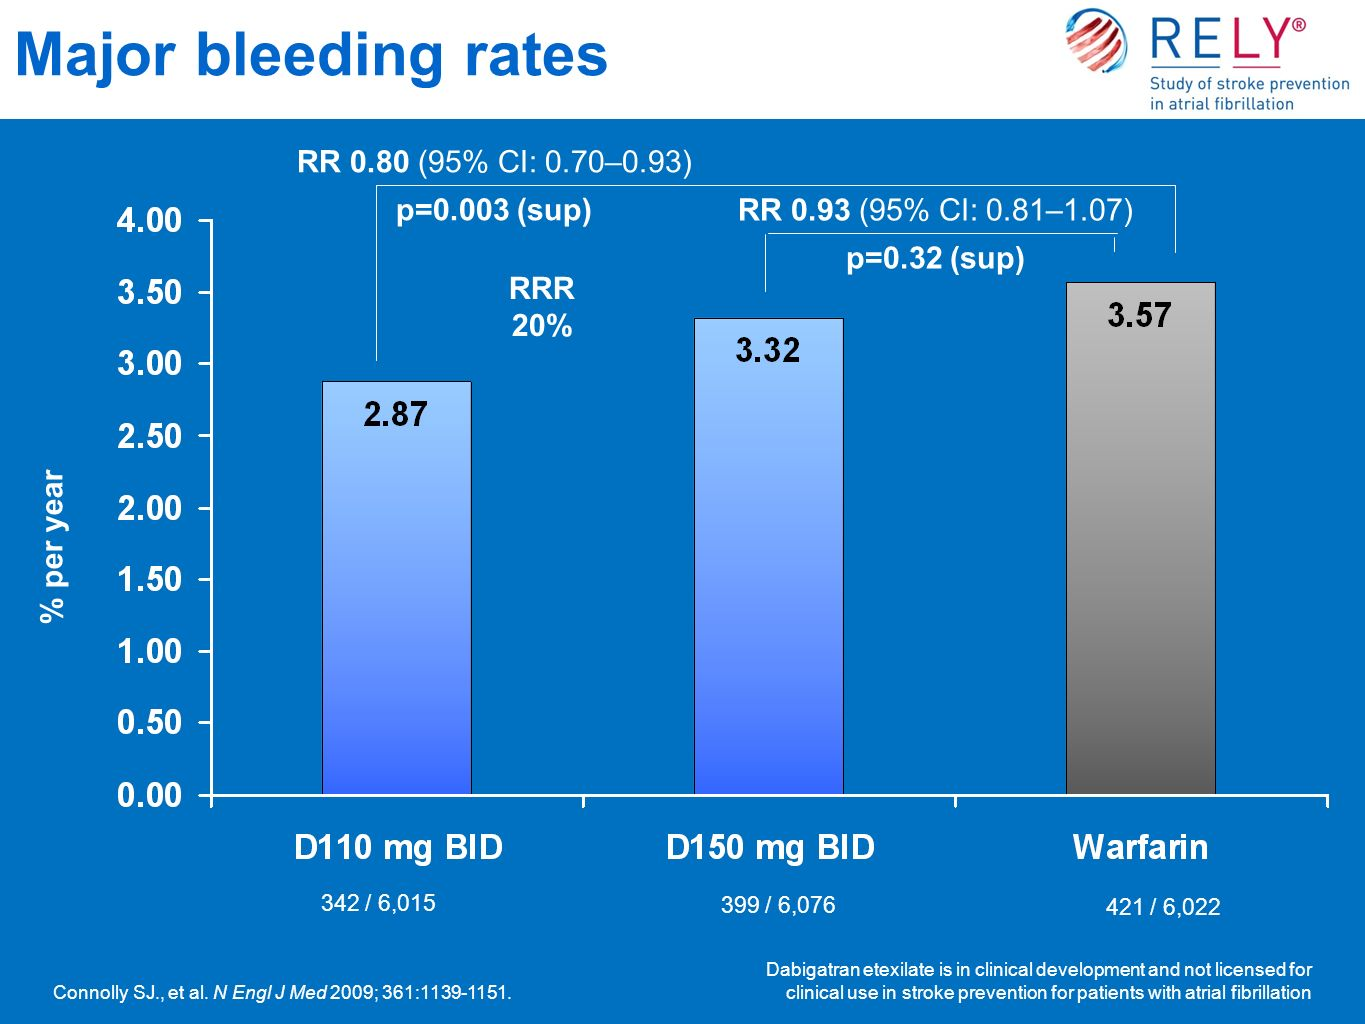 Major bleeding rates Dabigatran etexilate is in clinical development and not licensed for clinical use in stroke prevention for patients with atrial fibrillation RR 0.93 (95% CI: 0.81–1.07) p=0.32 (sup) RR 0.80 (95% CI: 0.70–0.93) p=0.003 (sup) 342 / 6,015 399 / 6,076 421 / 6,022 RRR 20% % per year Connolly SJ., et al.